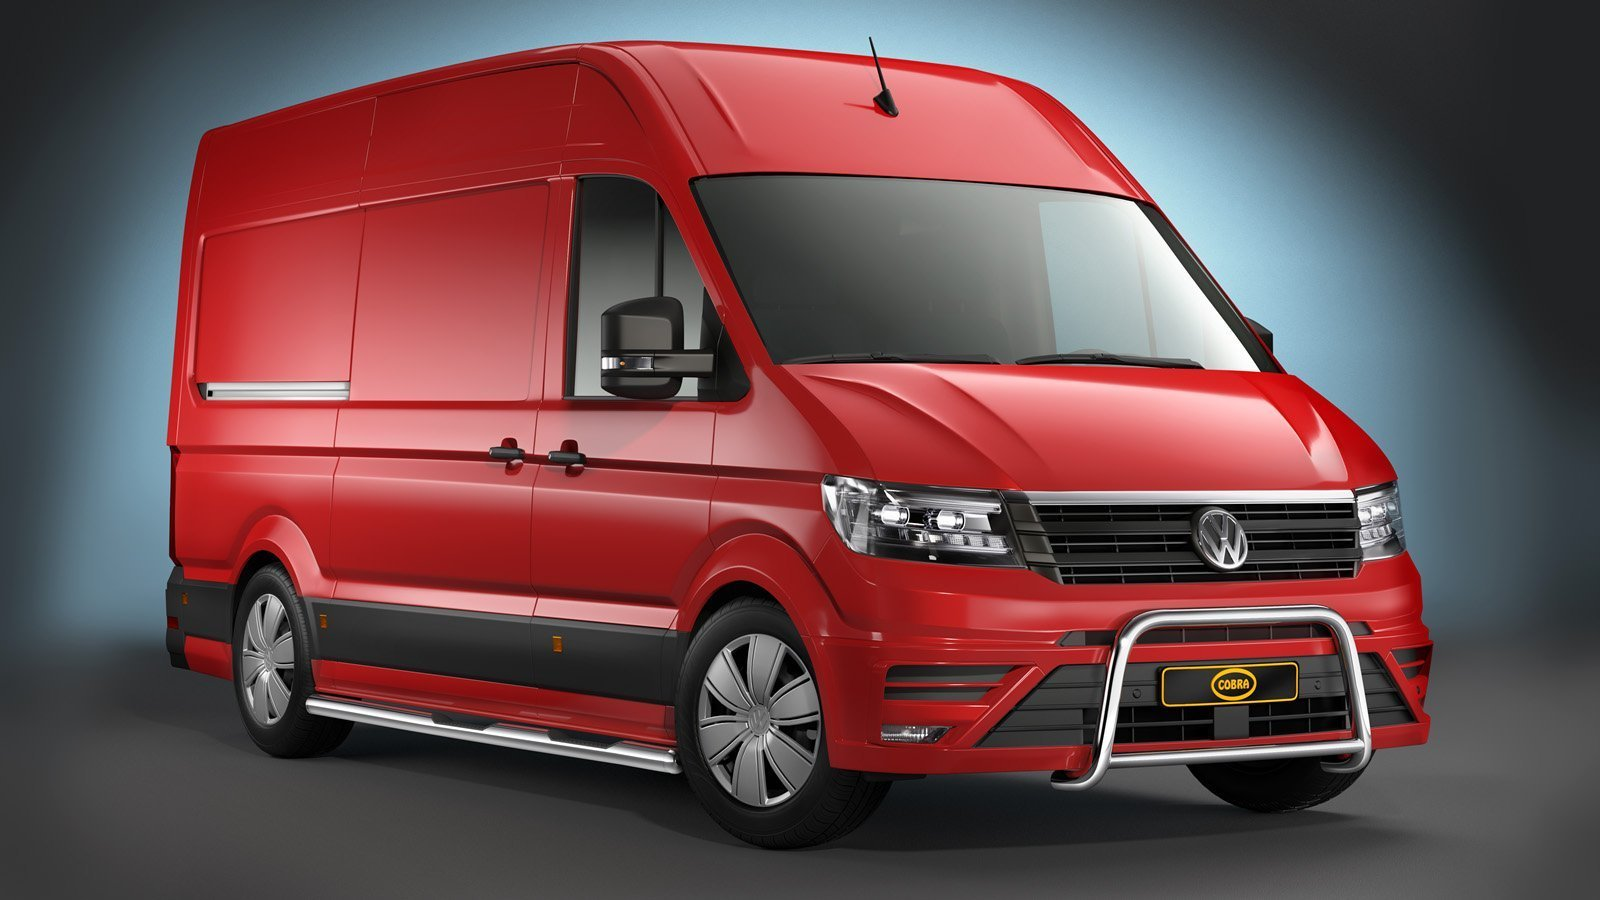 vw crafter 2017 side bars l3 tuning parts to new vw crafter. Black Bedroom Furniture Sets. Home Design Ideas